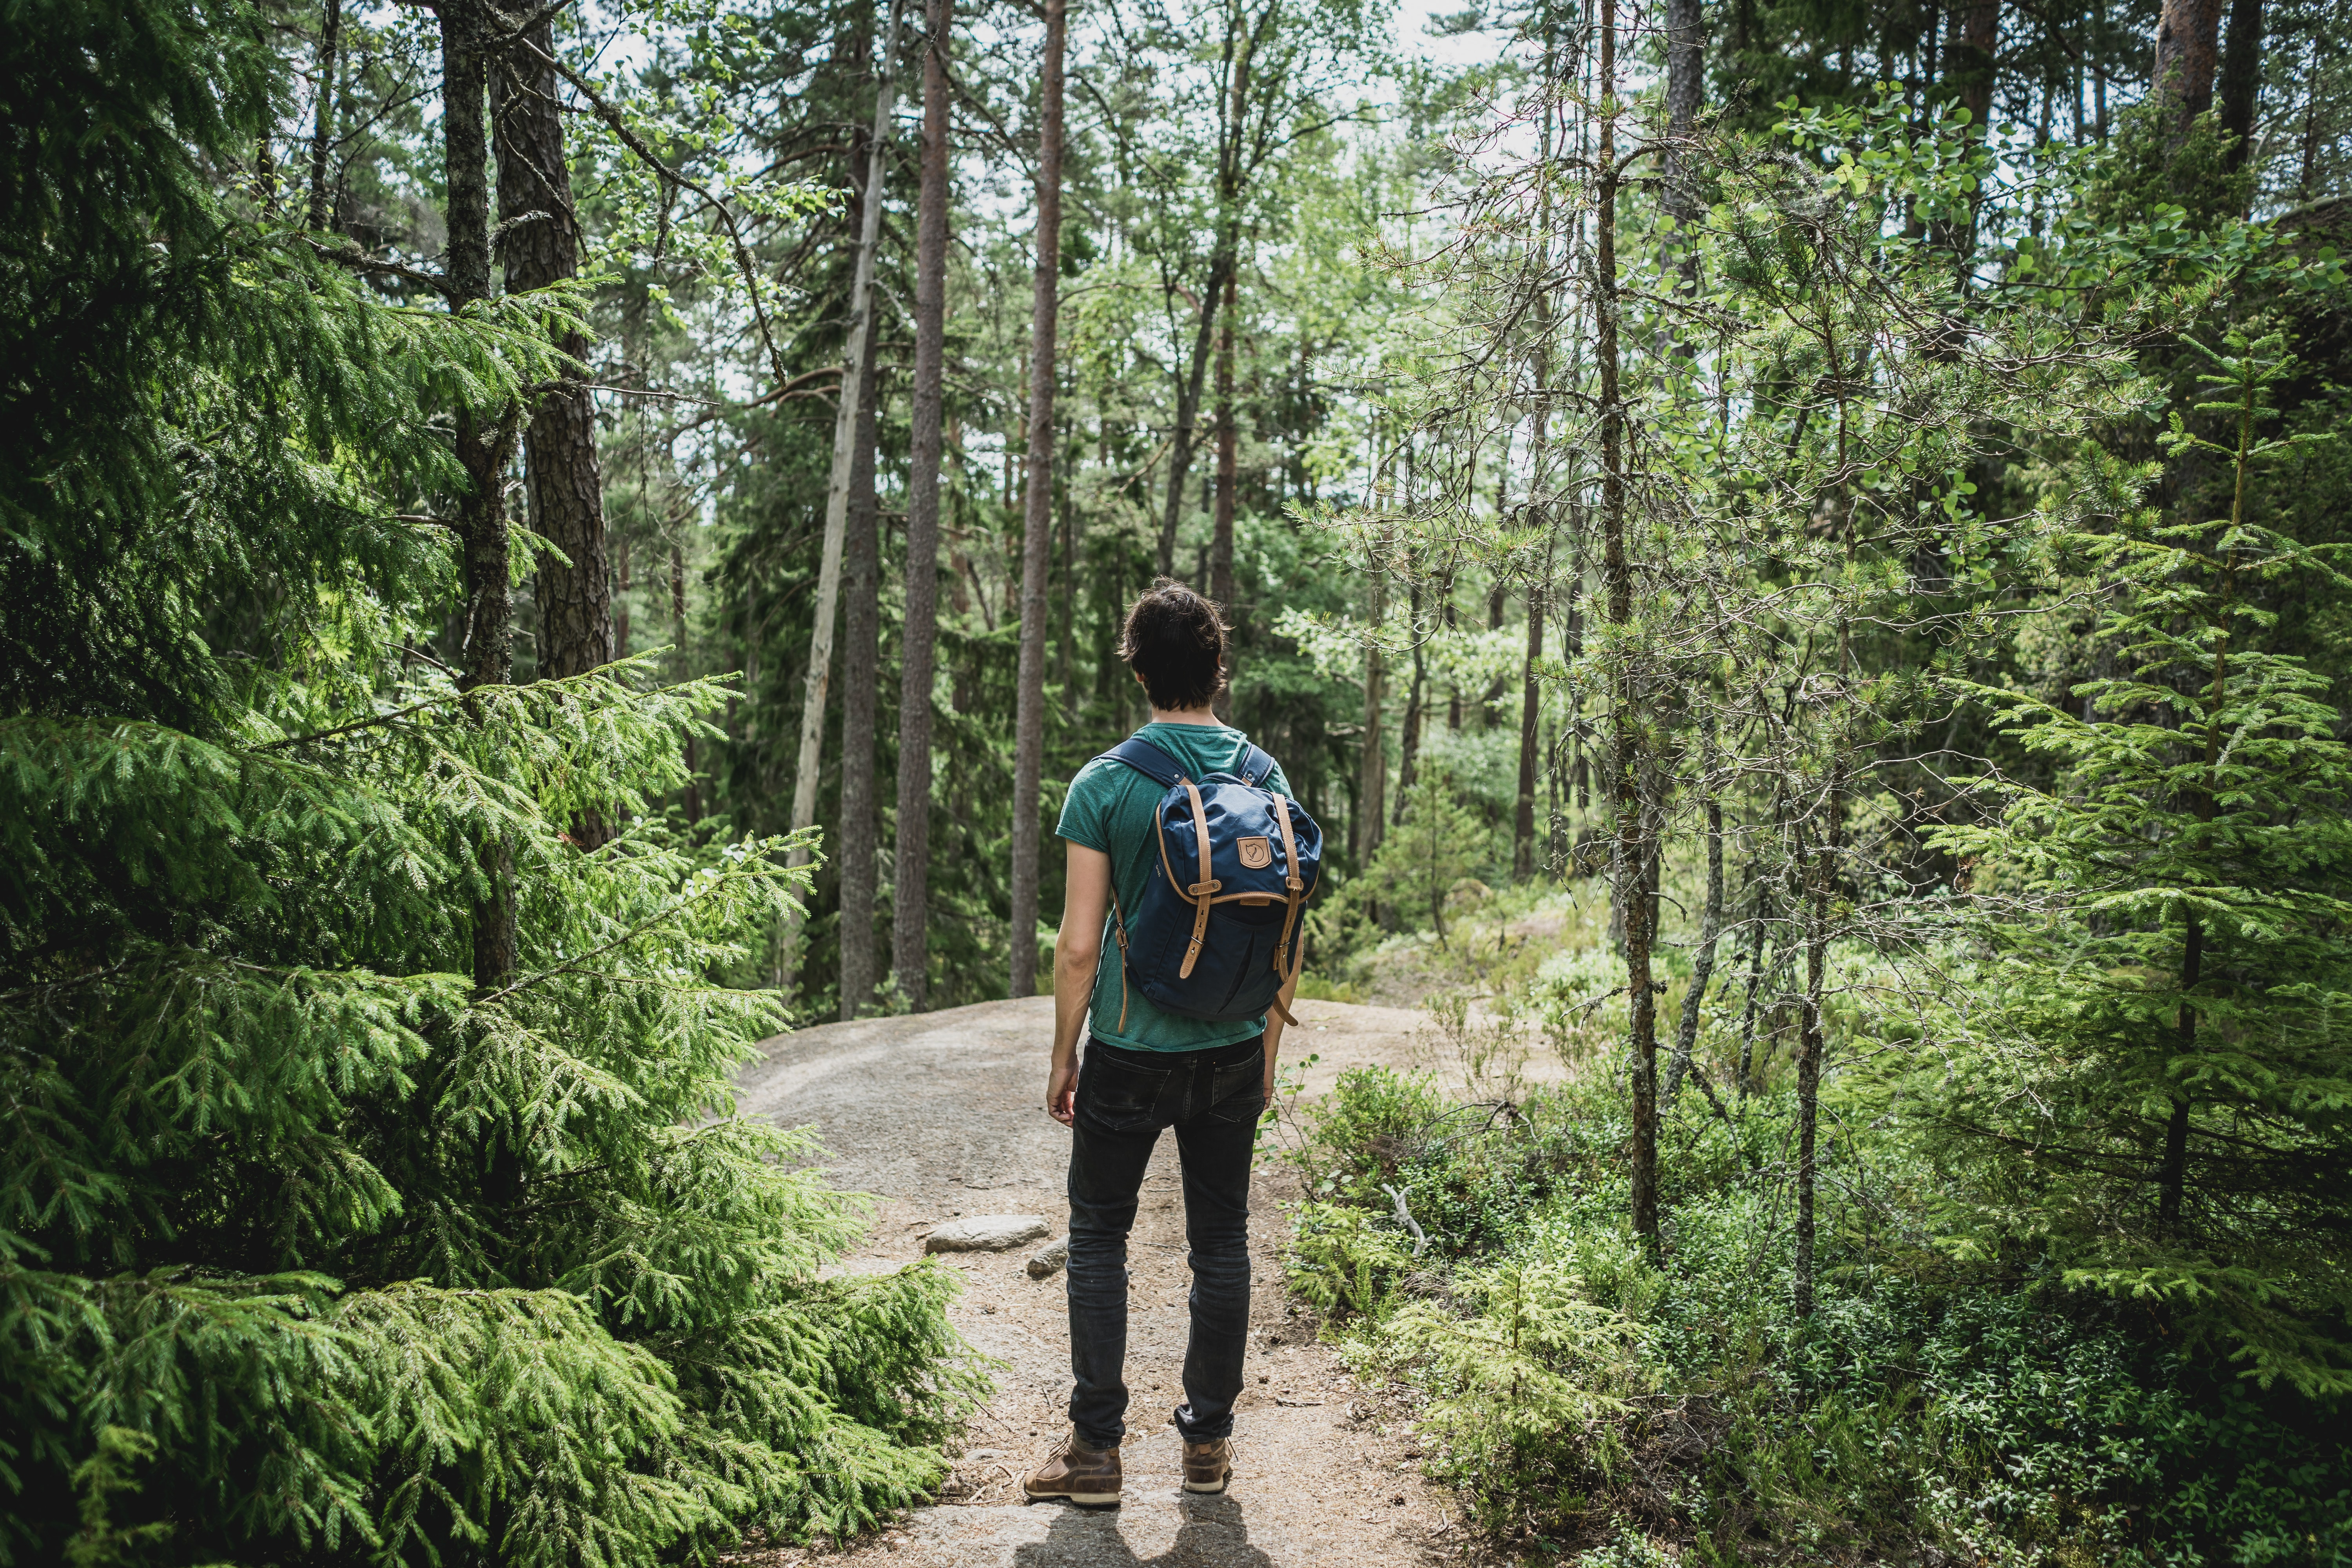 man wearing blue backpack walking through forest